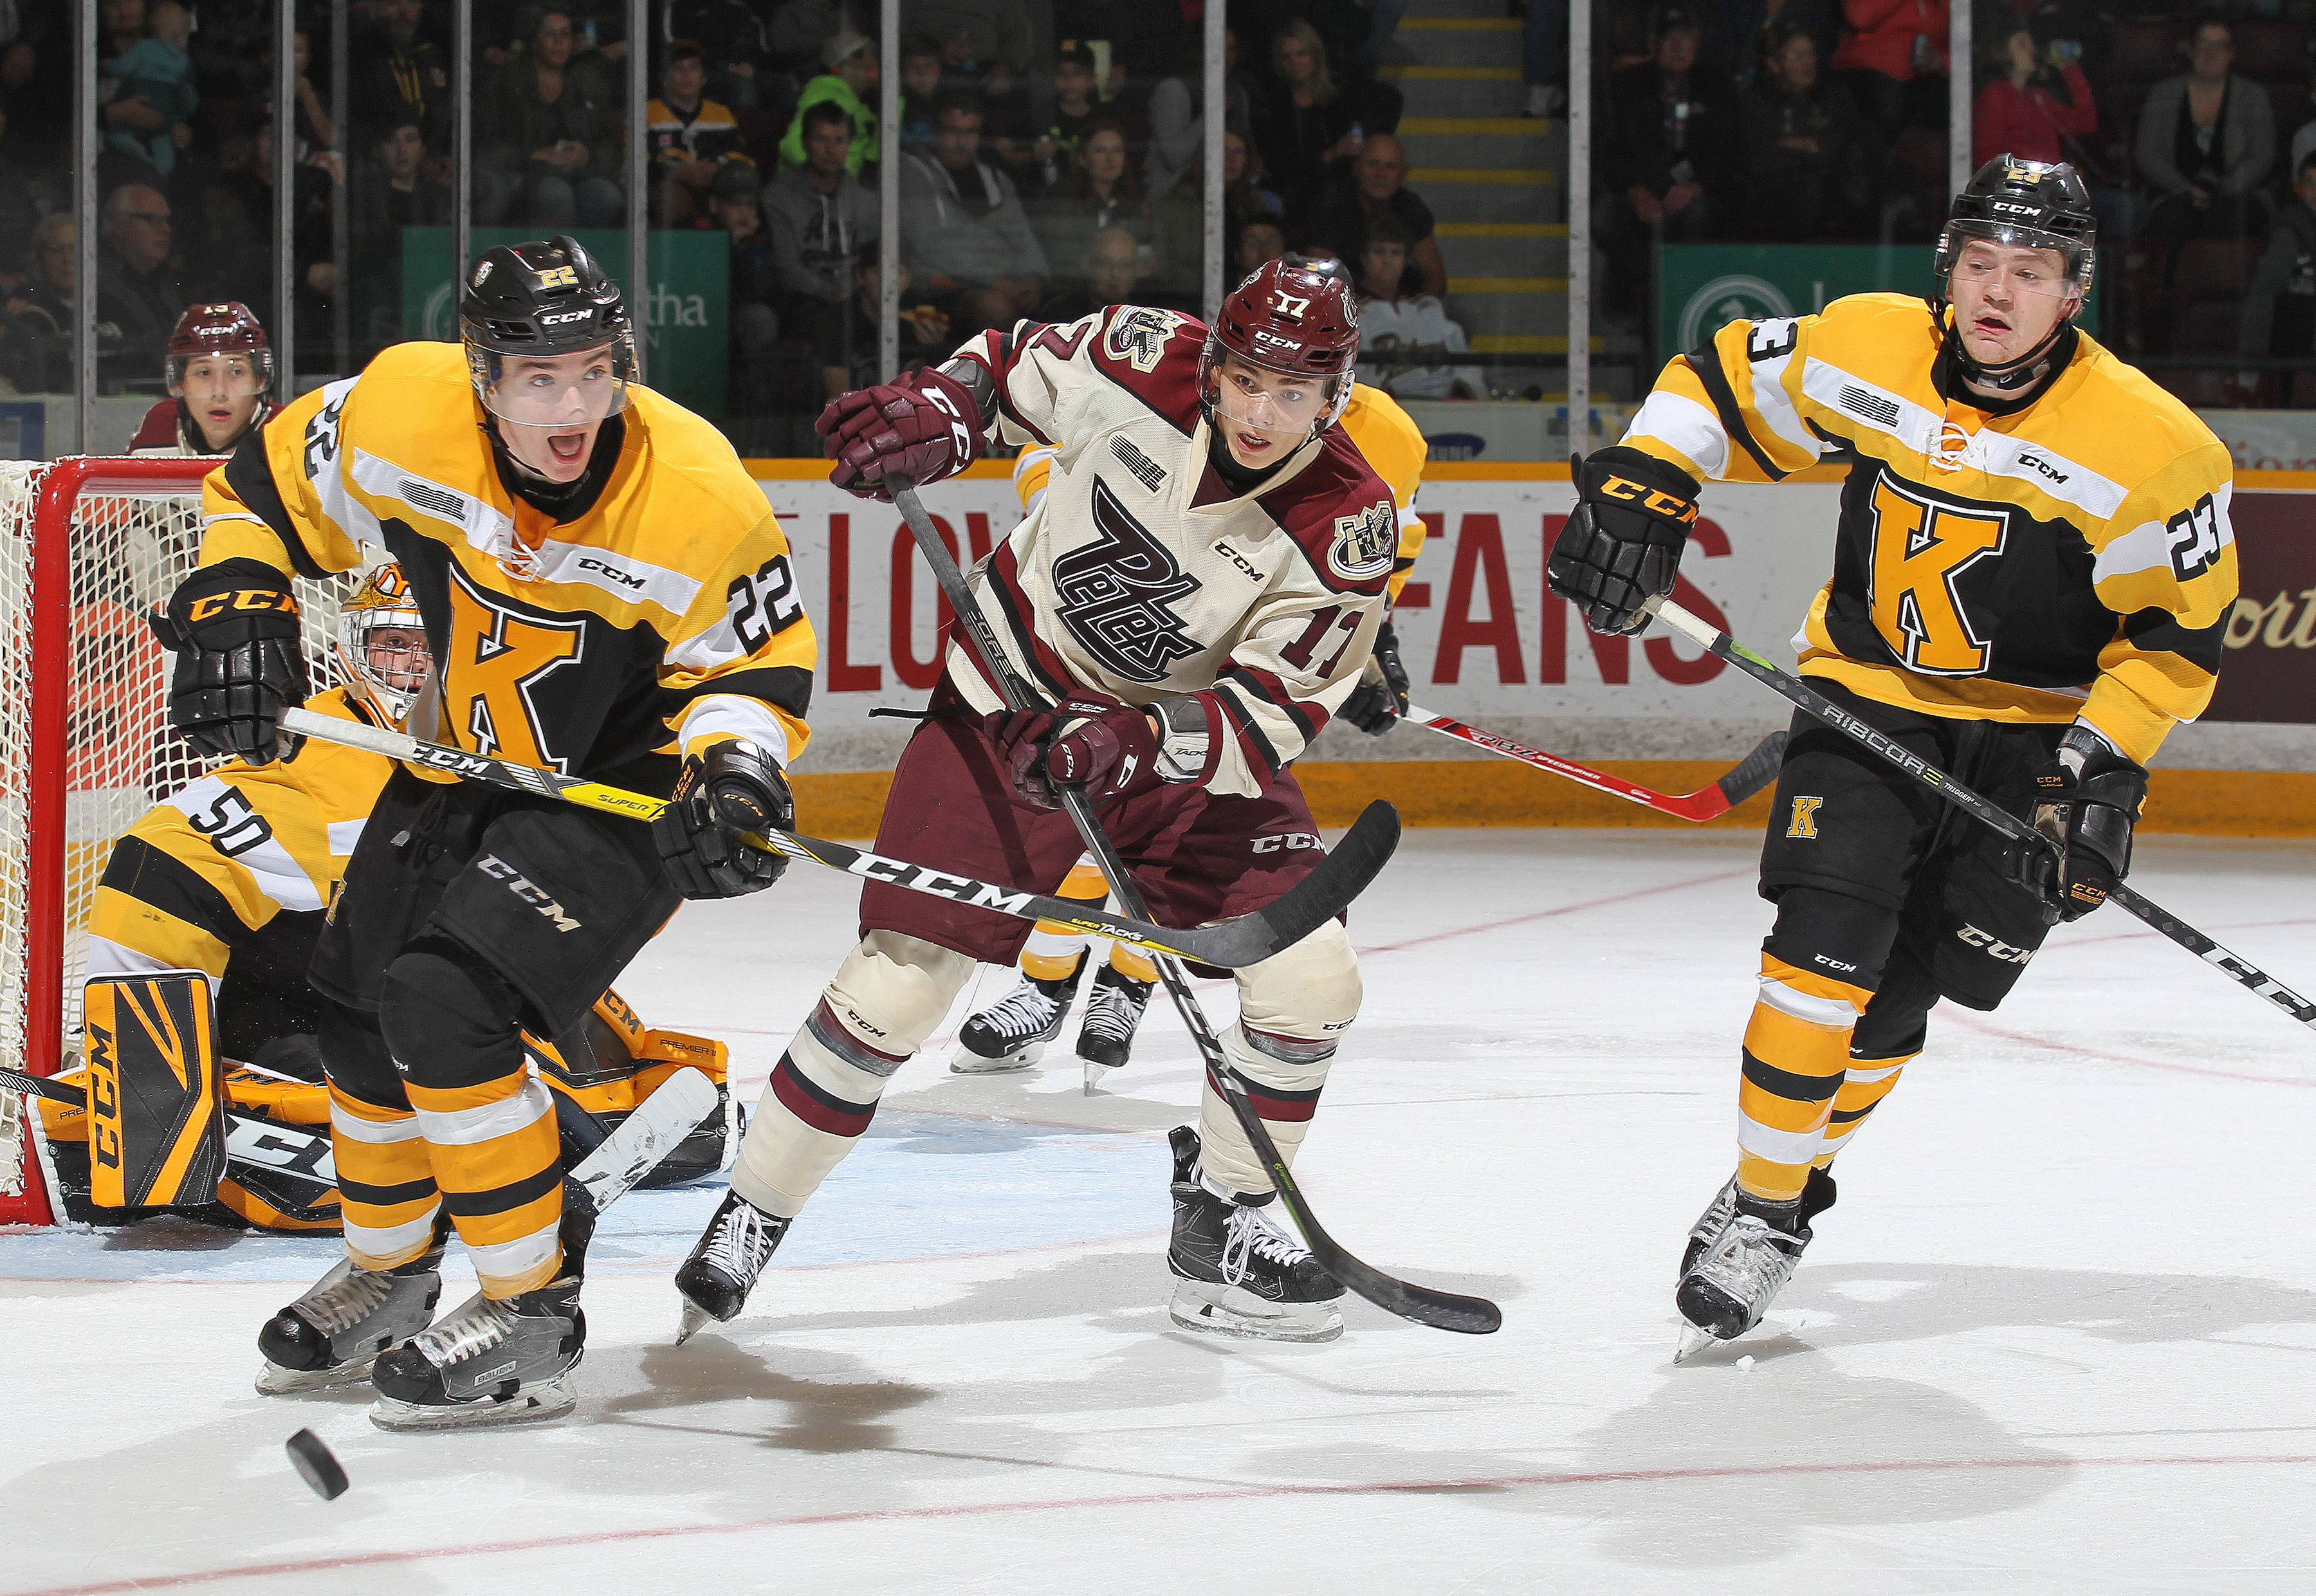 PETERBOROUGH, ON - OCTOBER 12: Jakob Brahaney #22 of the Kingston Frontenacs skates after a puck against Pavel Gogolev #17 of the Peterborough Petes in an OHL game at the Peterborough Memorial Centre on October 12, 2017 in Peterborough, Ontario.